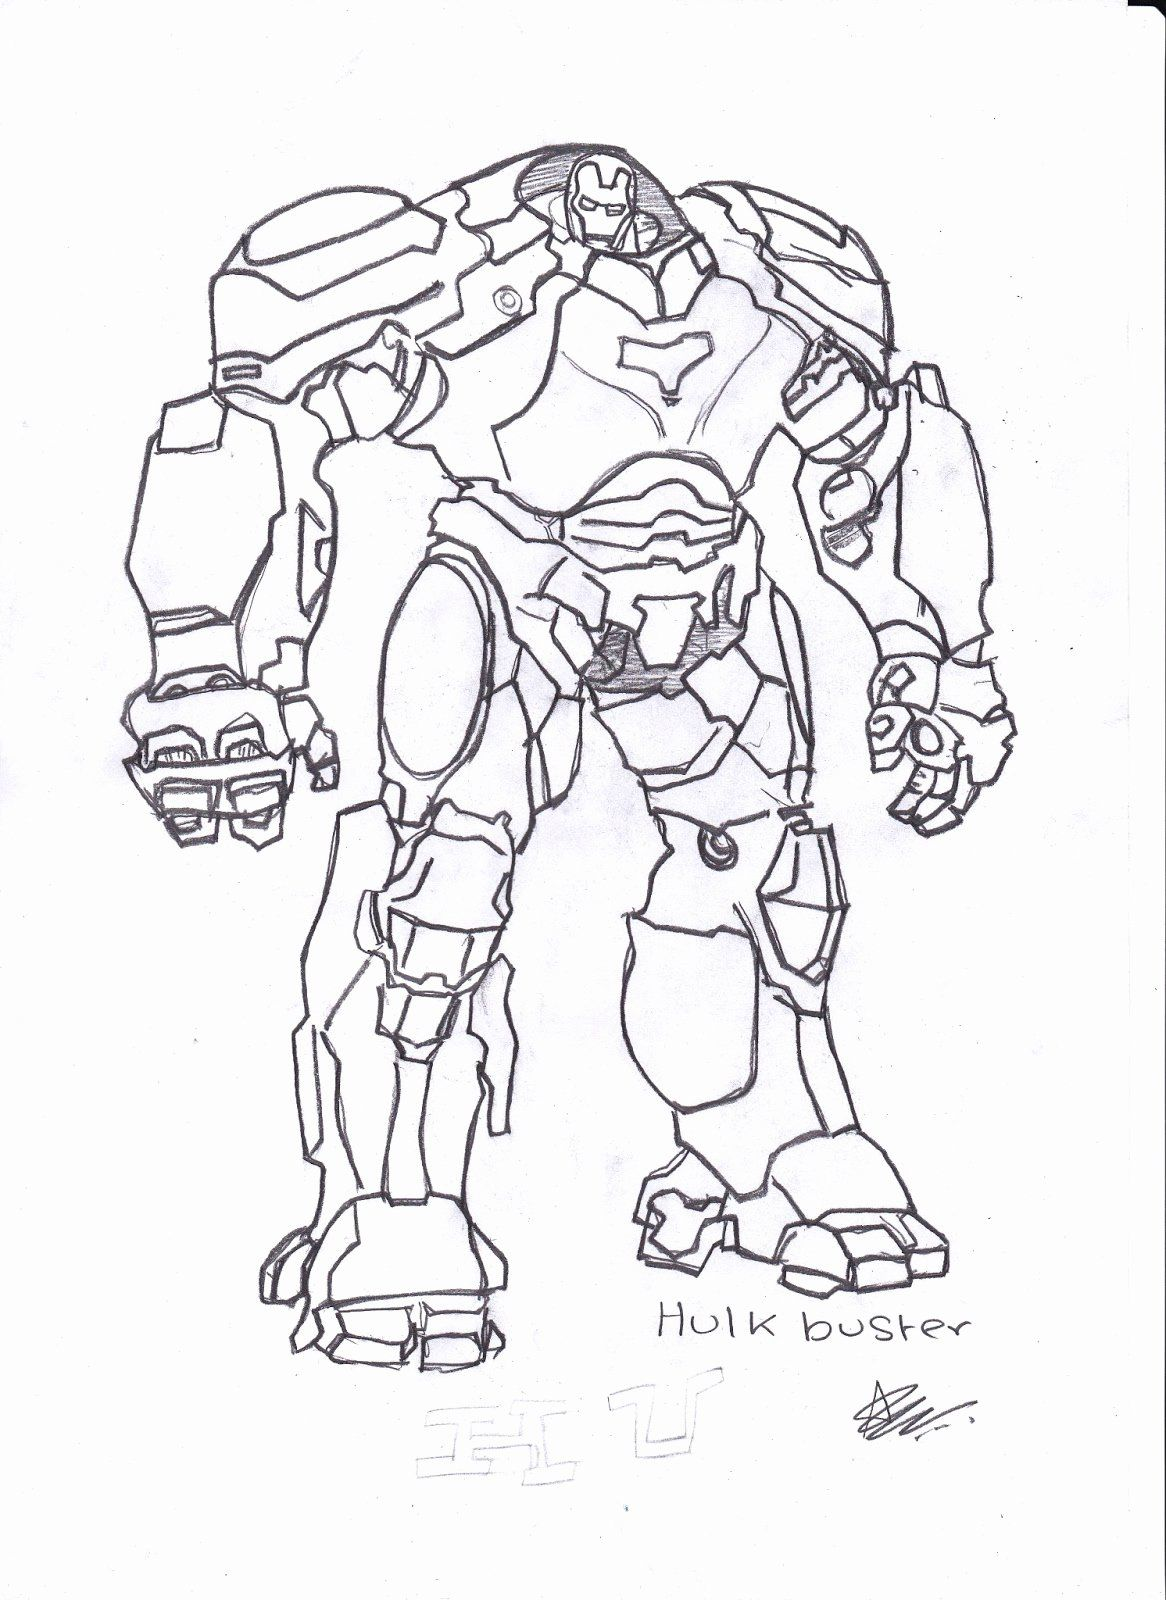 Hulk Buster Coloring Page Elegant Akshay S Blog Sketches In 2020 Coloring Pages Ninjago Coloring Pages Lego Coloring Pages